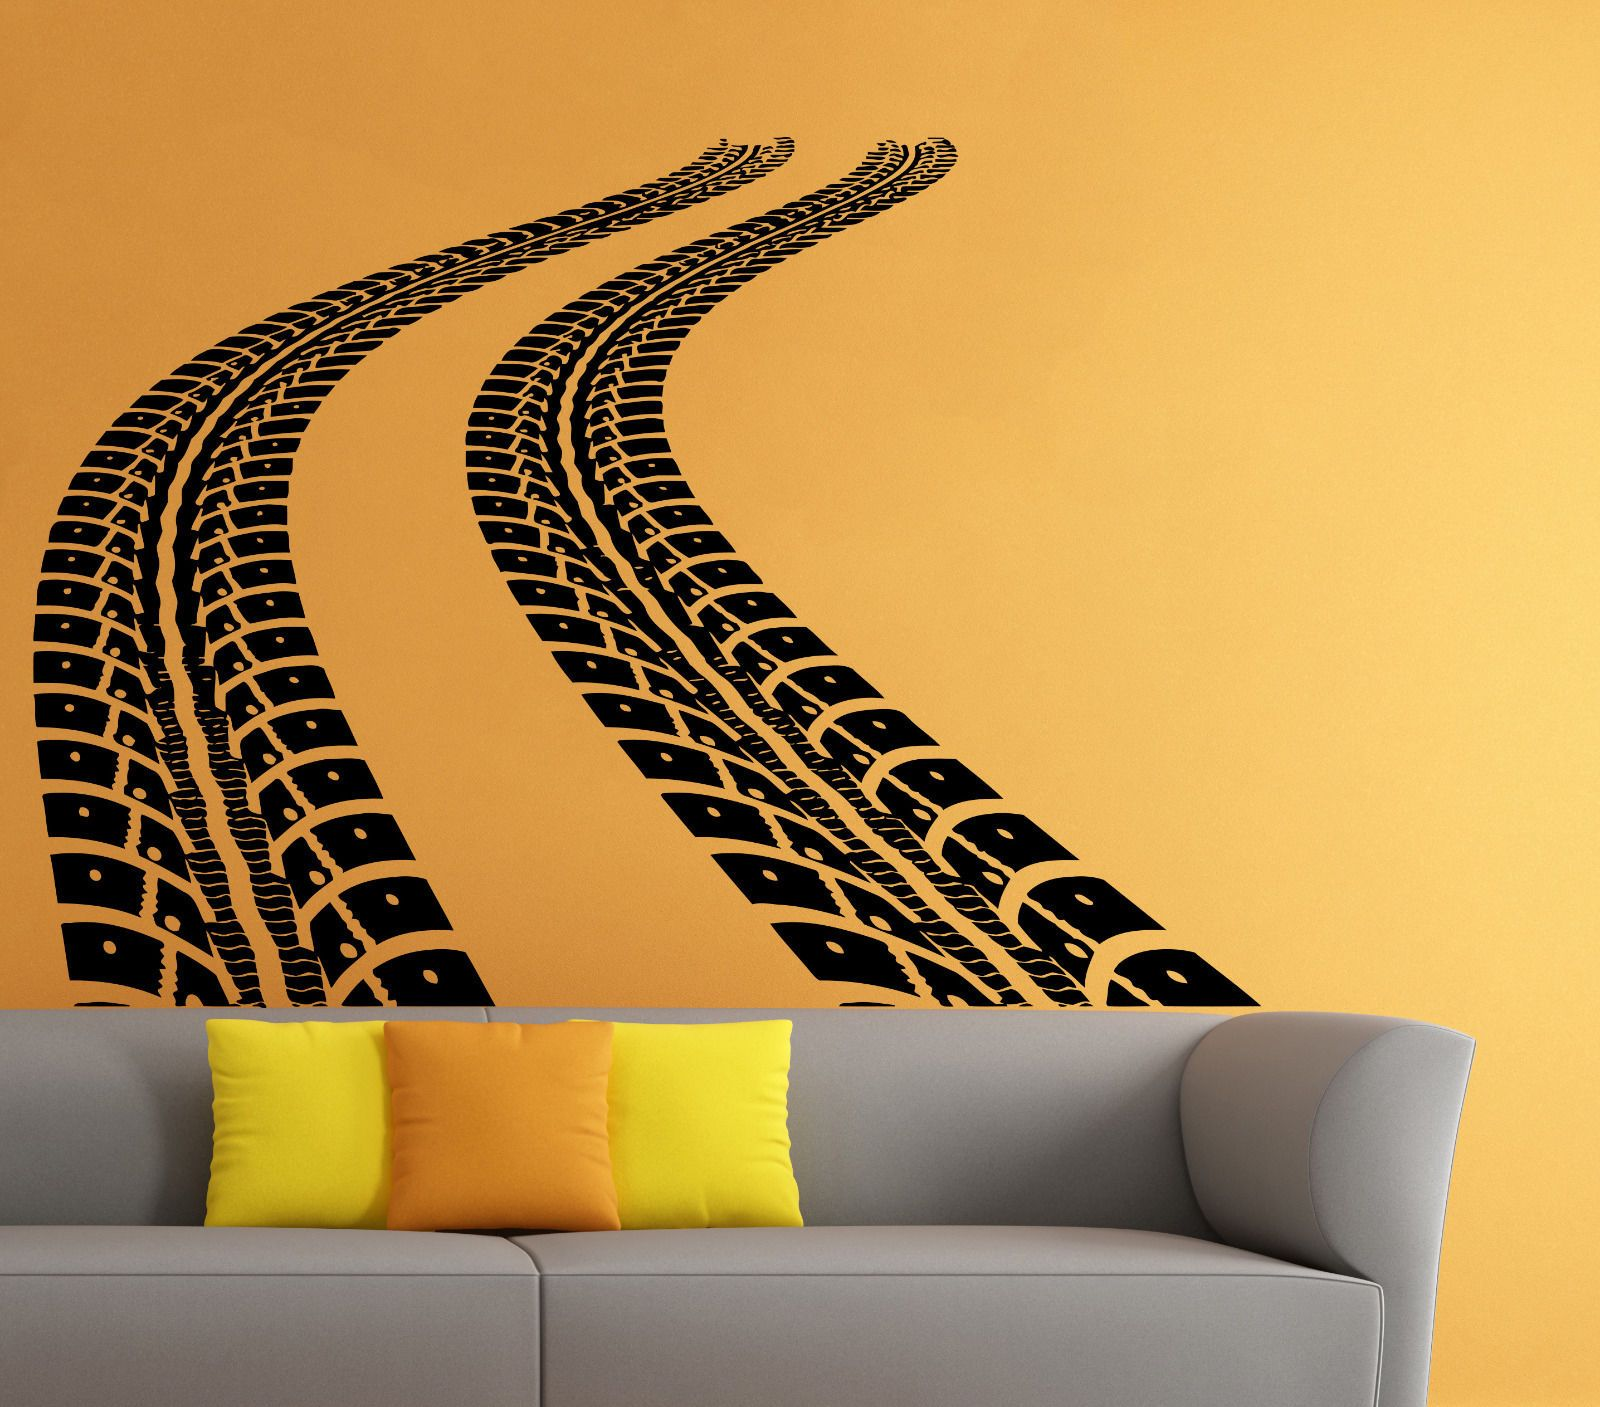 Tire Tracks Wall Decal Car Traces Vinyl Sticker Art Home Mural Decor ...